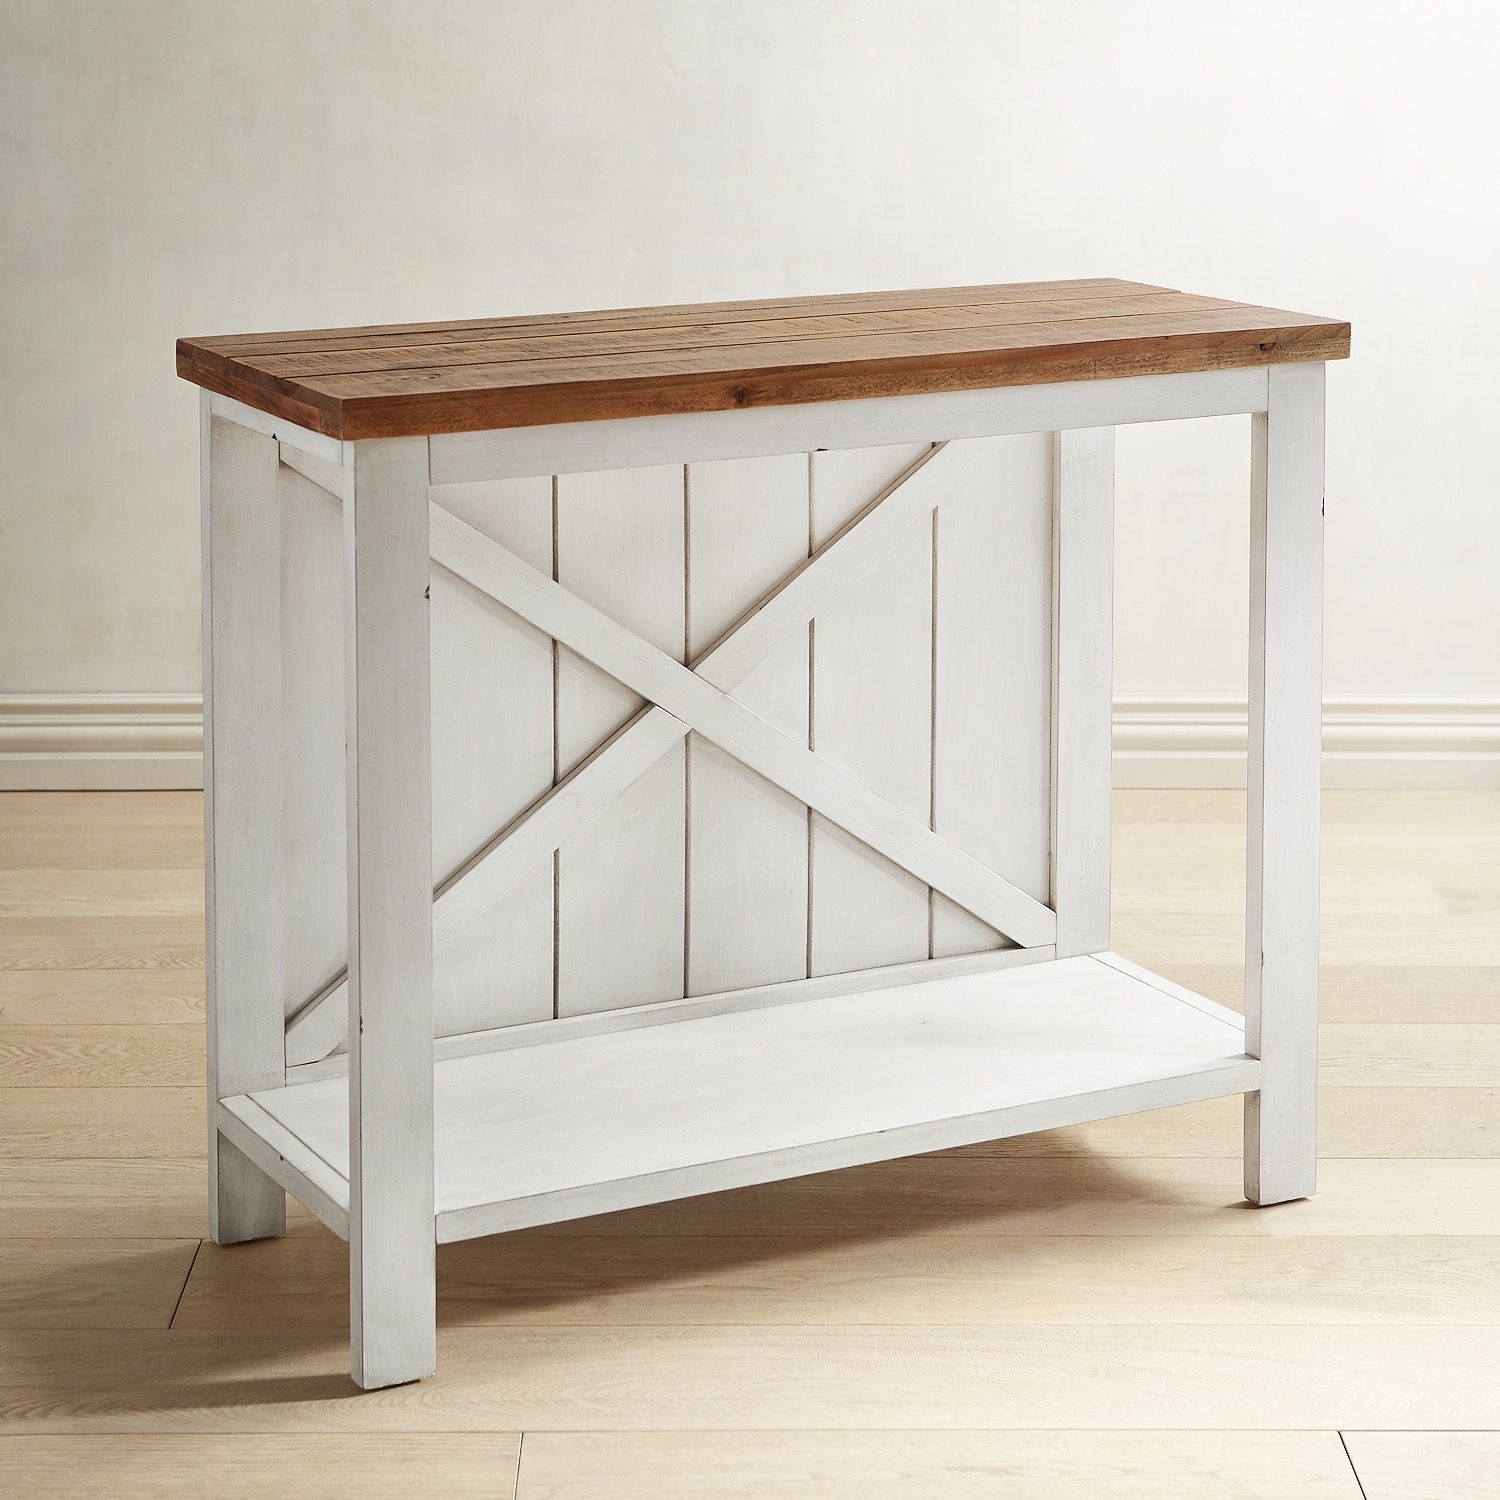 Farmhouse White Small Console Table - Pier 1 Imports